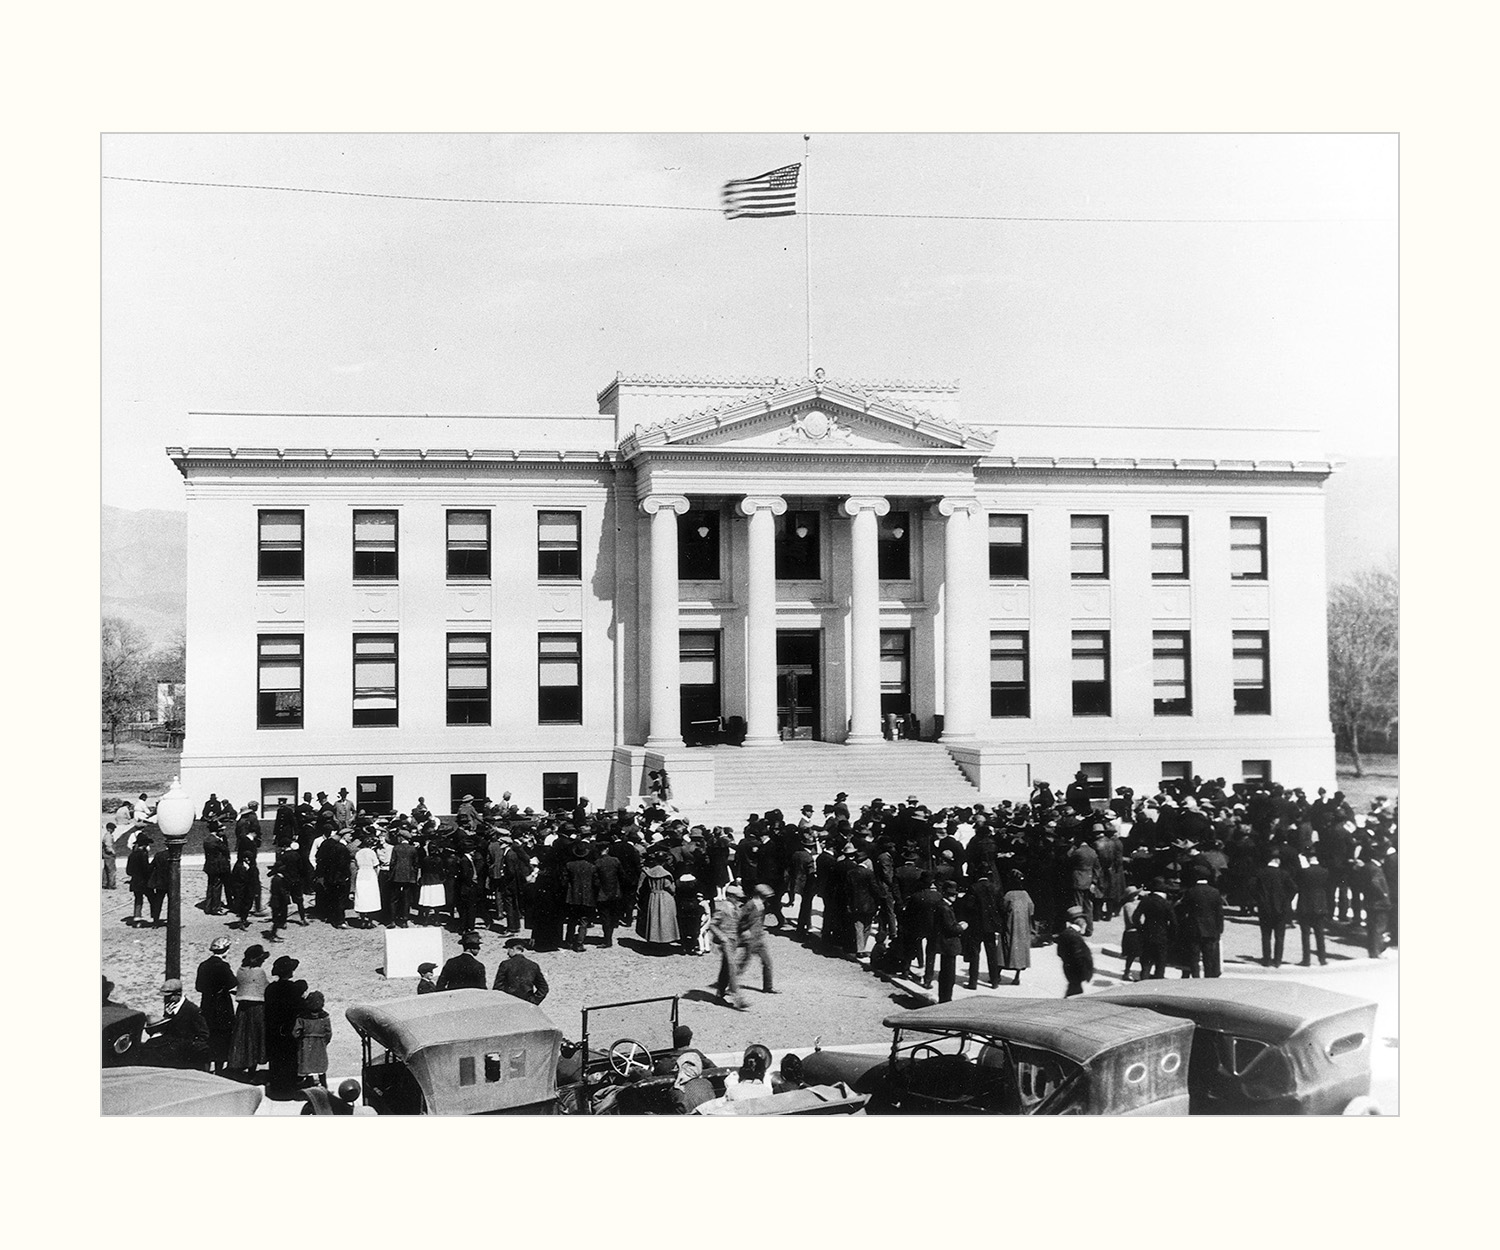 California Courthouses: Inyo County